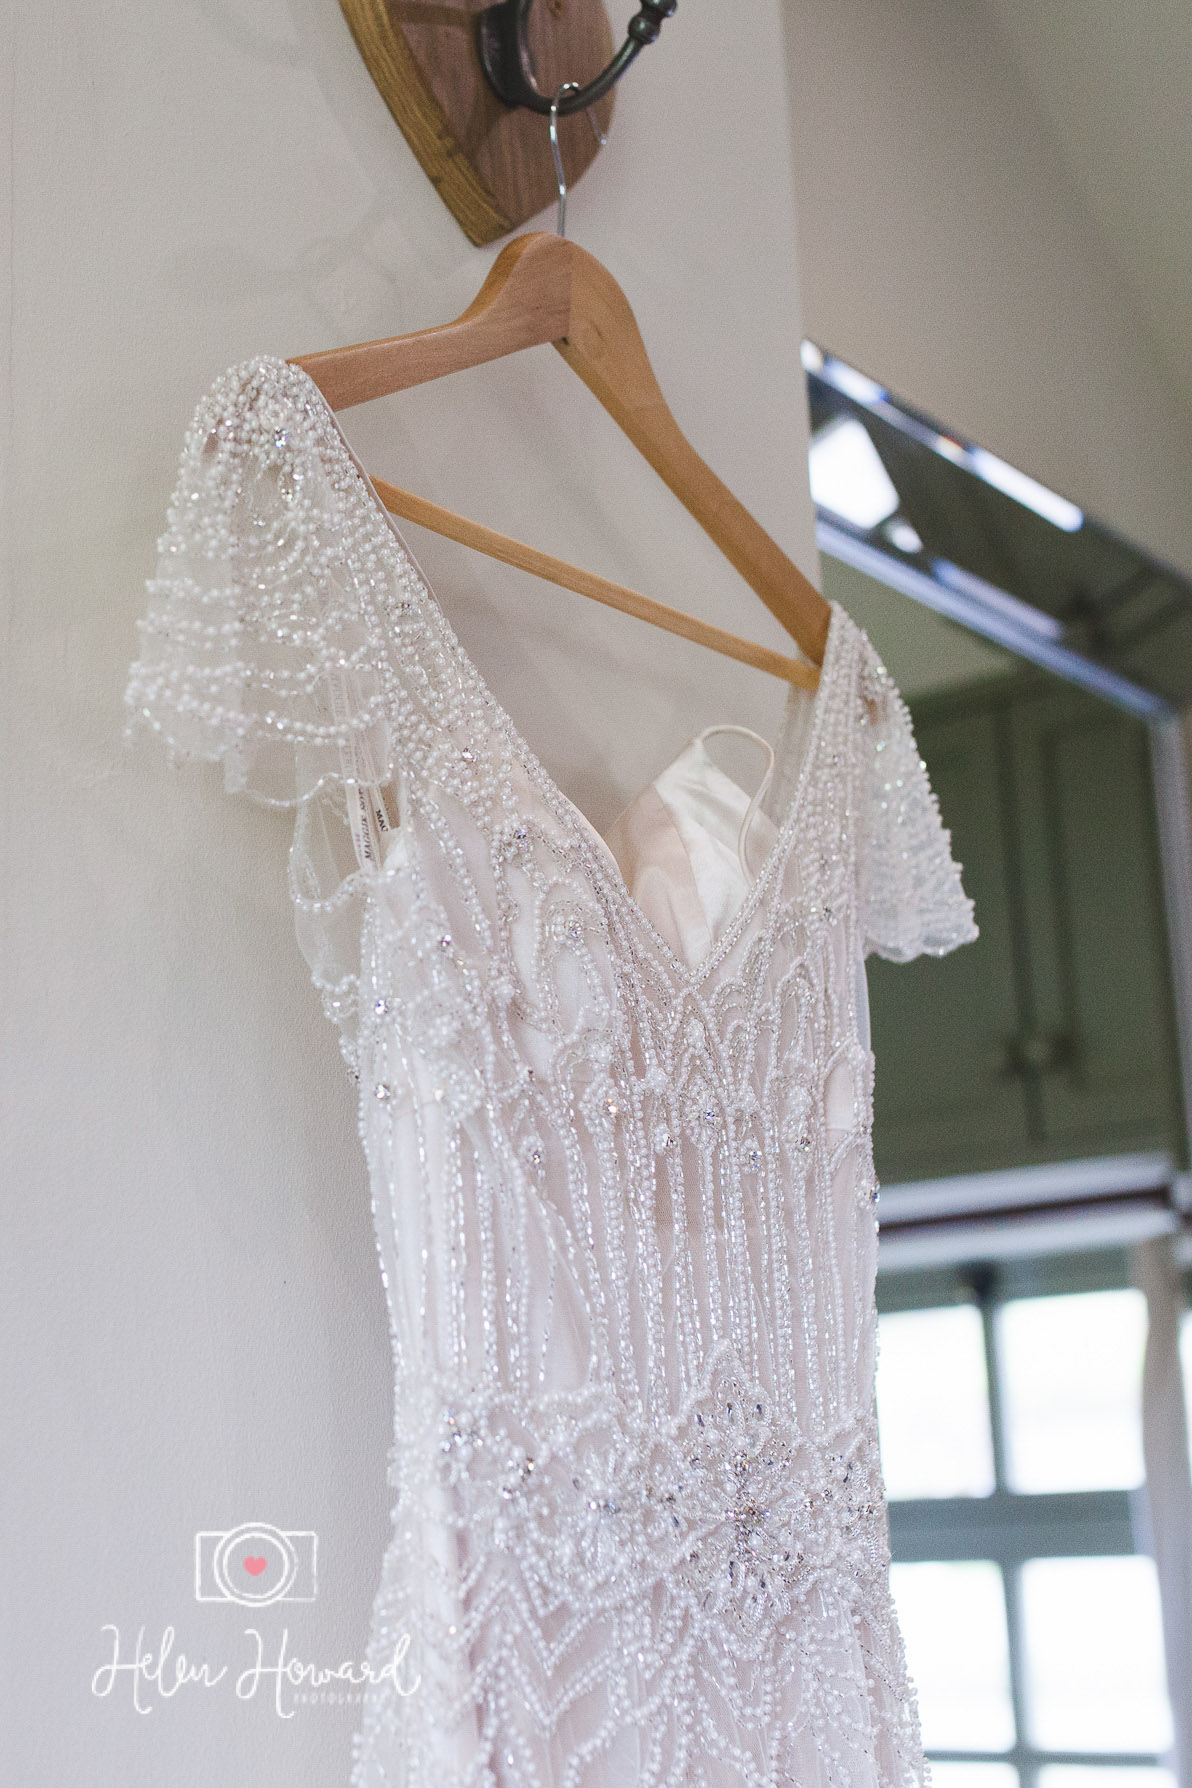 Brides Wedding Maggie Sottero Gown hanging up in The Old Dairy